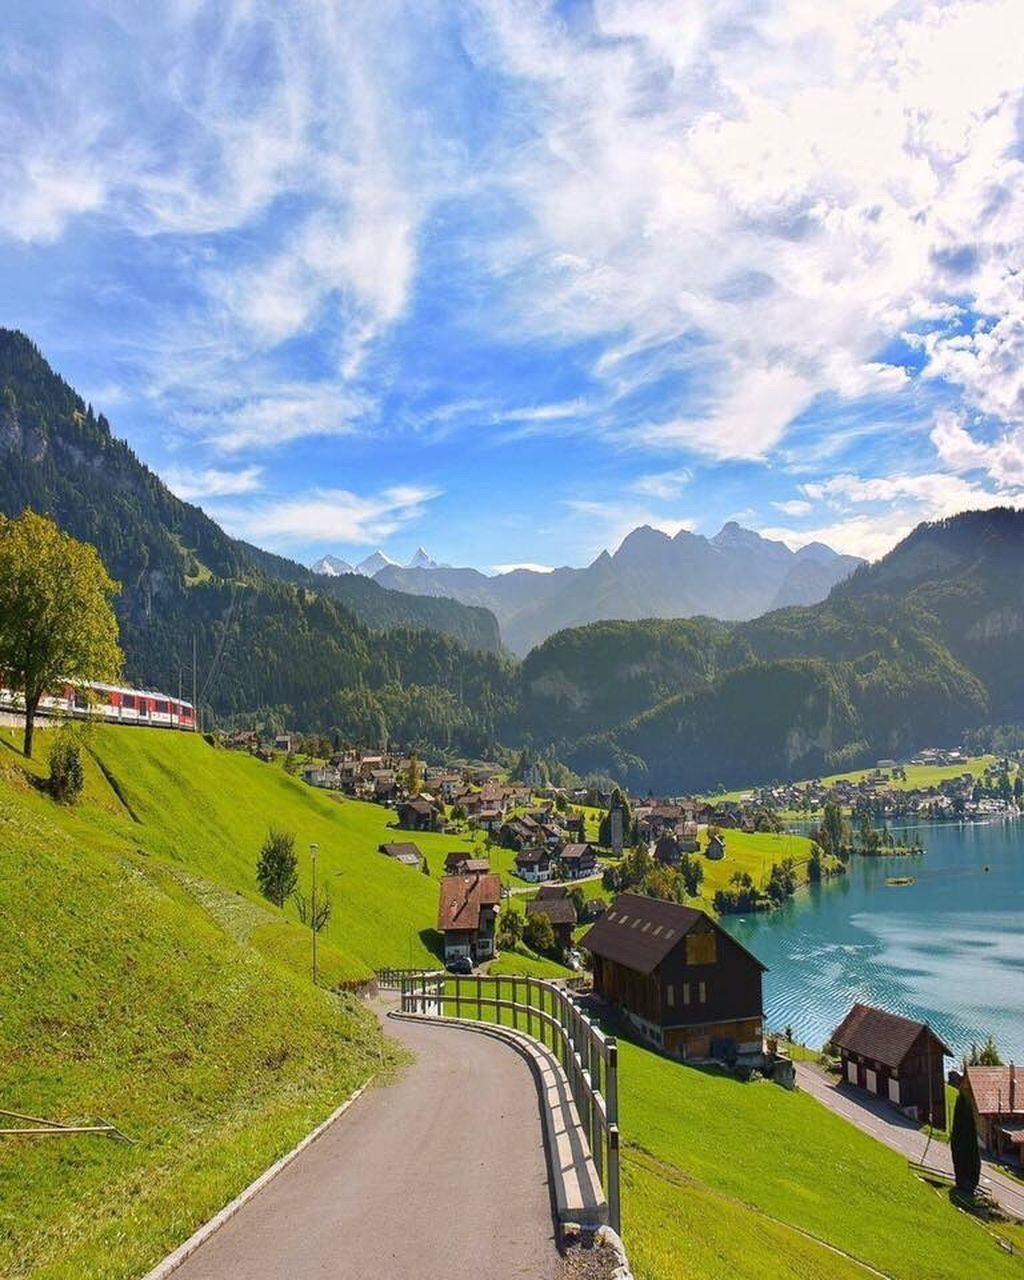 mountain, mountain range, road, scenics, nature, outdoors, transportation, cloud - sky, sky, the way forward, built structure, day, tranquility, landscape, beauty in nature, architecture, tranquil scene, tree, no people, grass, travel destinations, water, building exterior, winding road